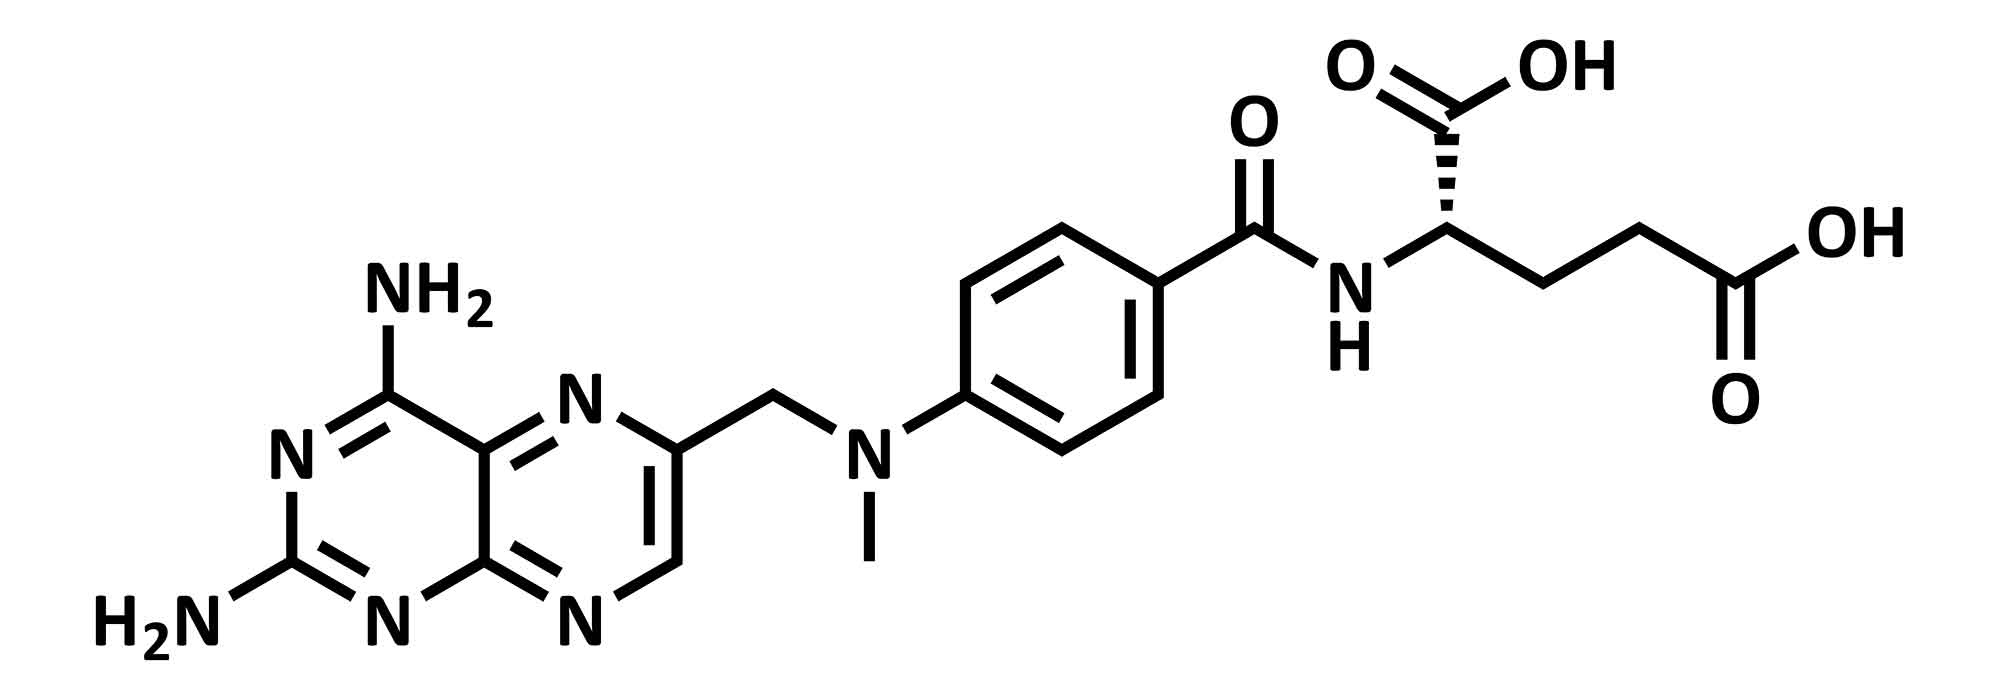 Methotrexate chemical compound